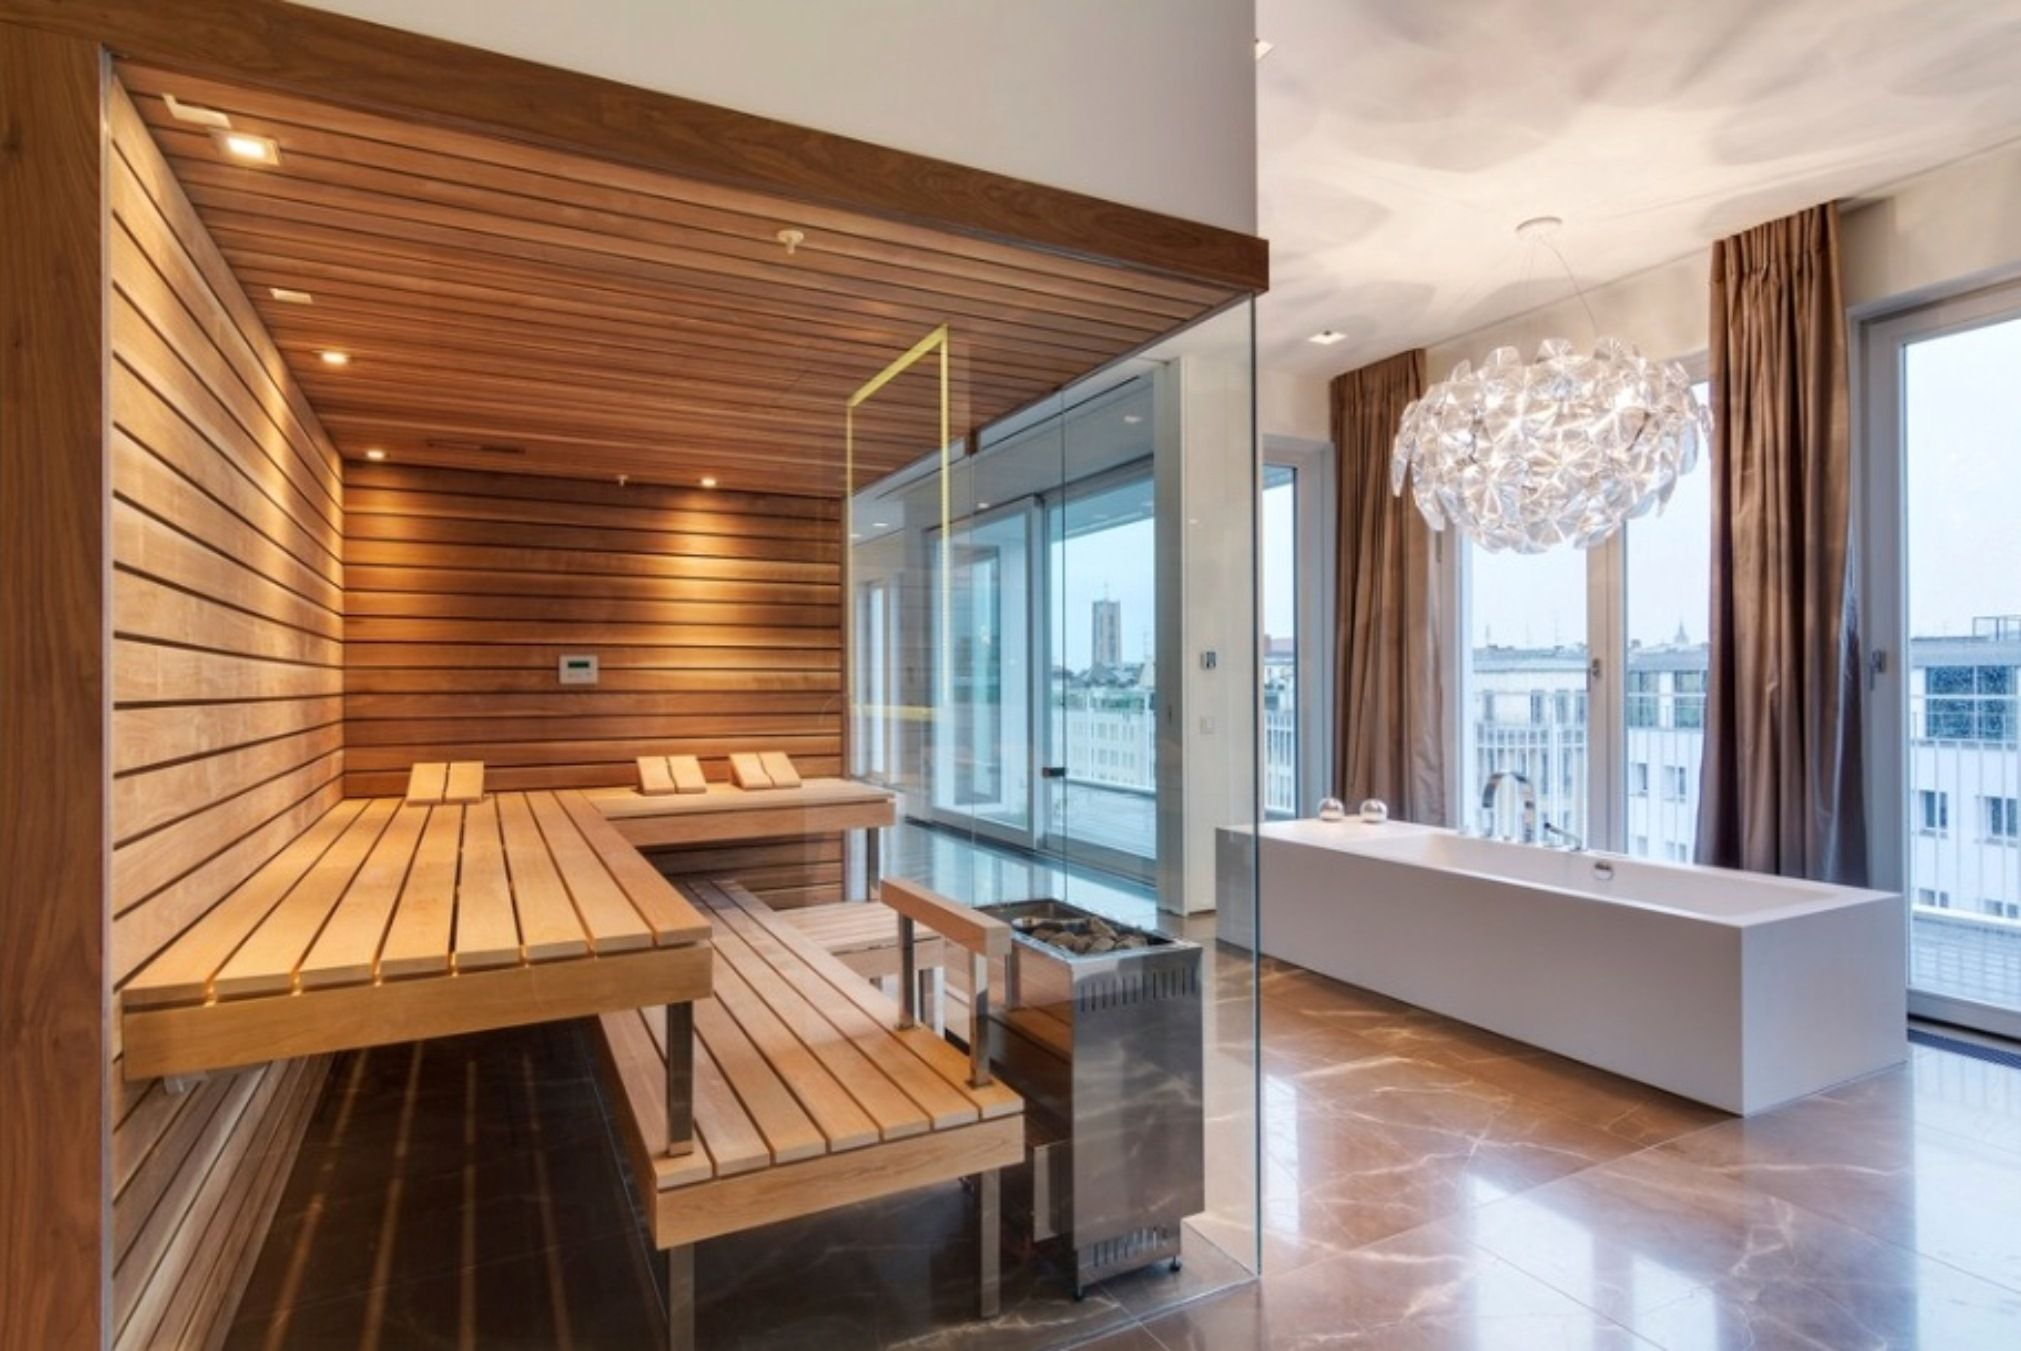 An Elegant Sauna Evening To Invite Your Guests To Is The Top Notch Dream  Event